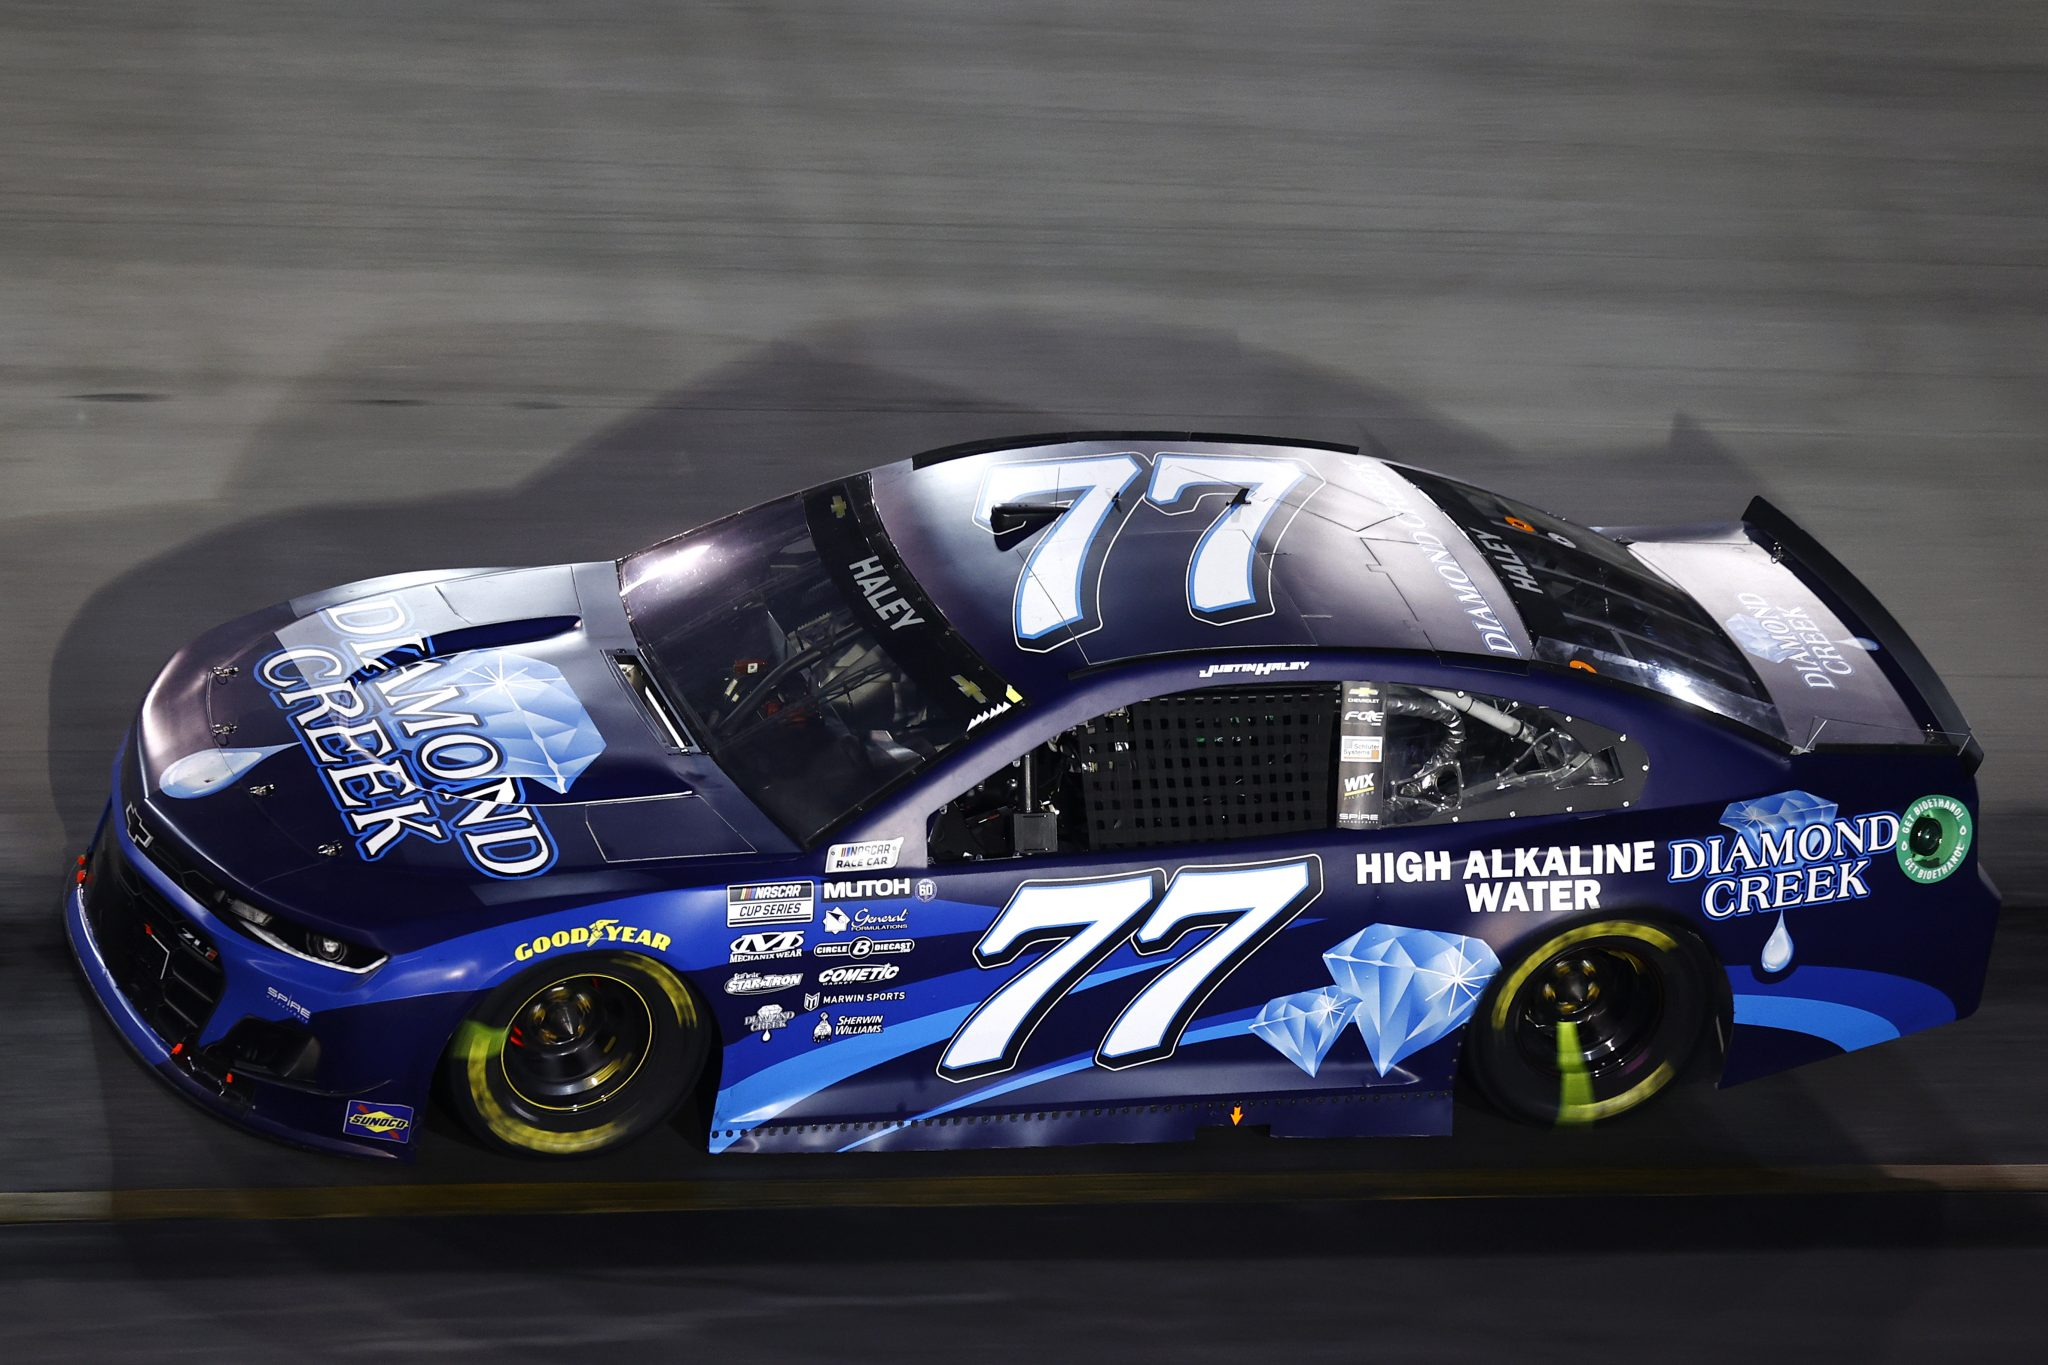 BRISTOL, TENNESSEE - SEPTEMBER 18: Justin Haley, driver of the #77 Diamond Creek Water Chevrolet, drives during the NASCAR Cup Series Bass Pro Shops Night Race at Bristol Motor Speedway on September 18, 2021 in Bristol, Tennessee. (Photo by Jared C. Tilton/Getty Images) | Getty Images